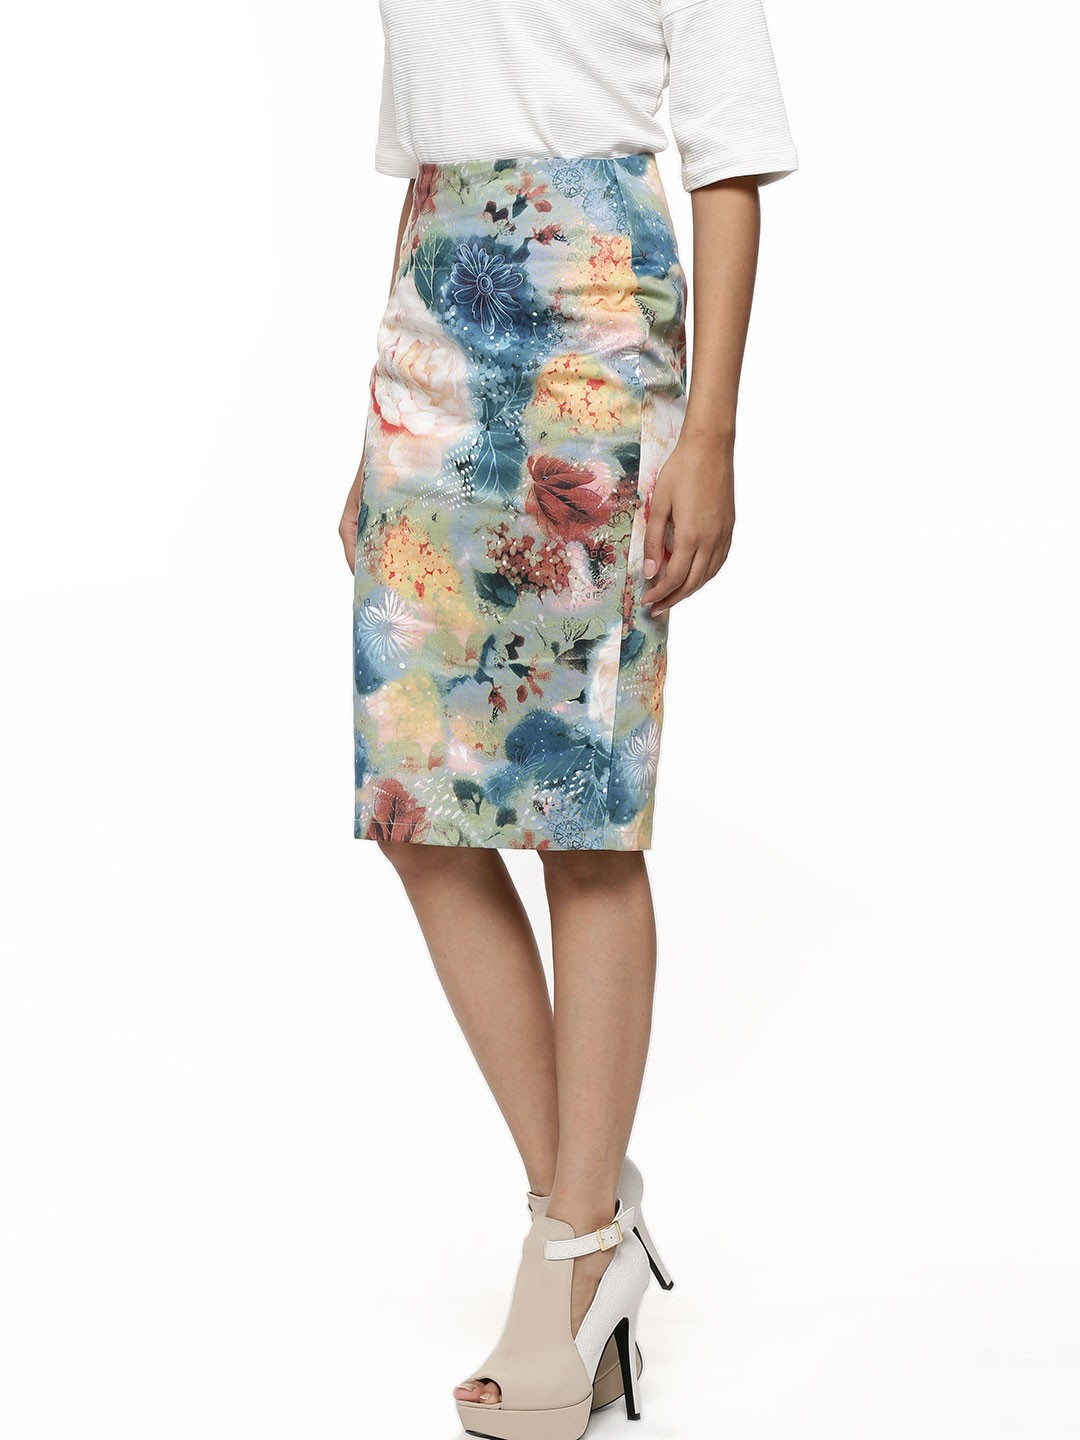 buy abstract print skirt for s